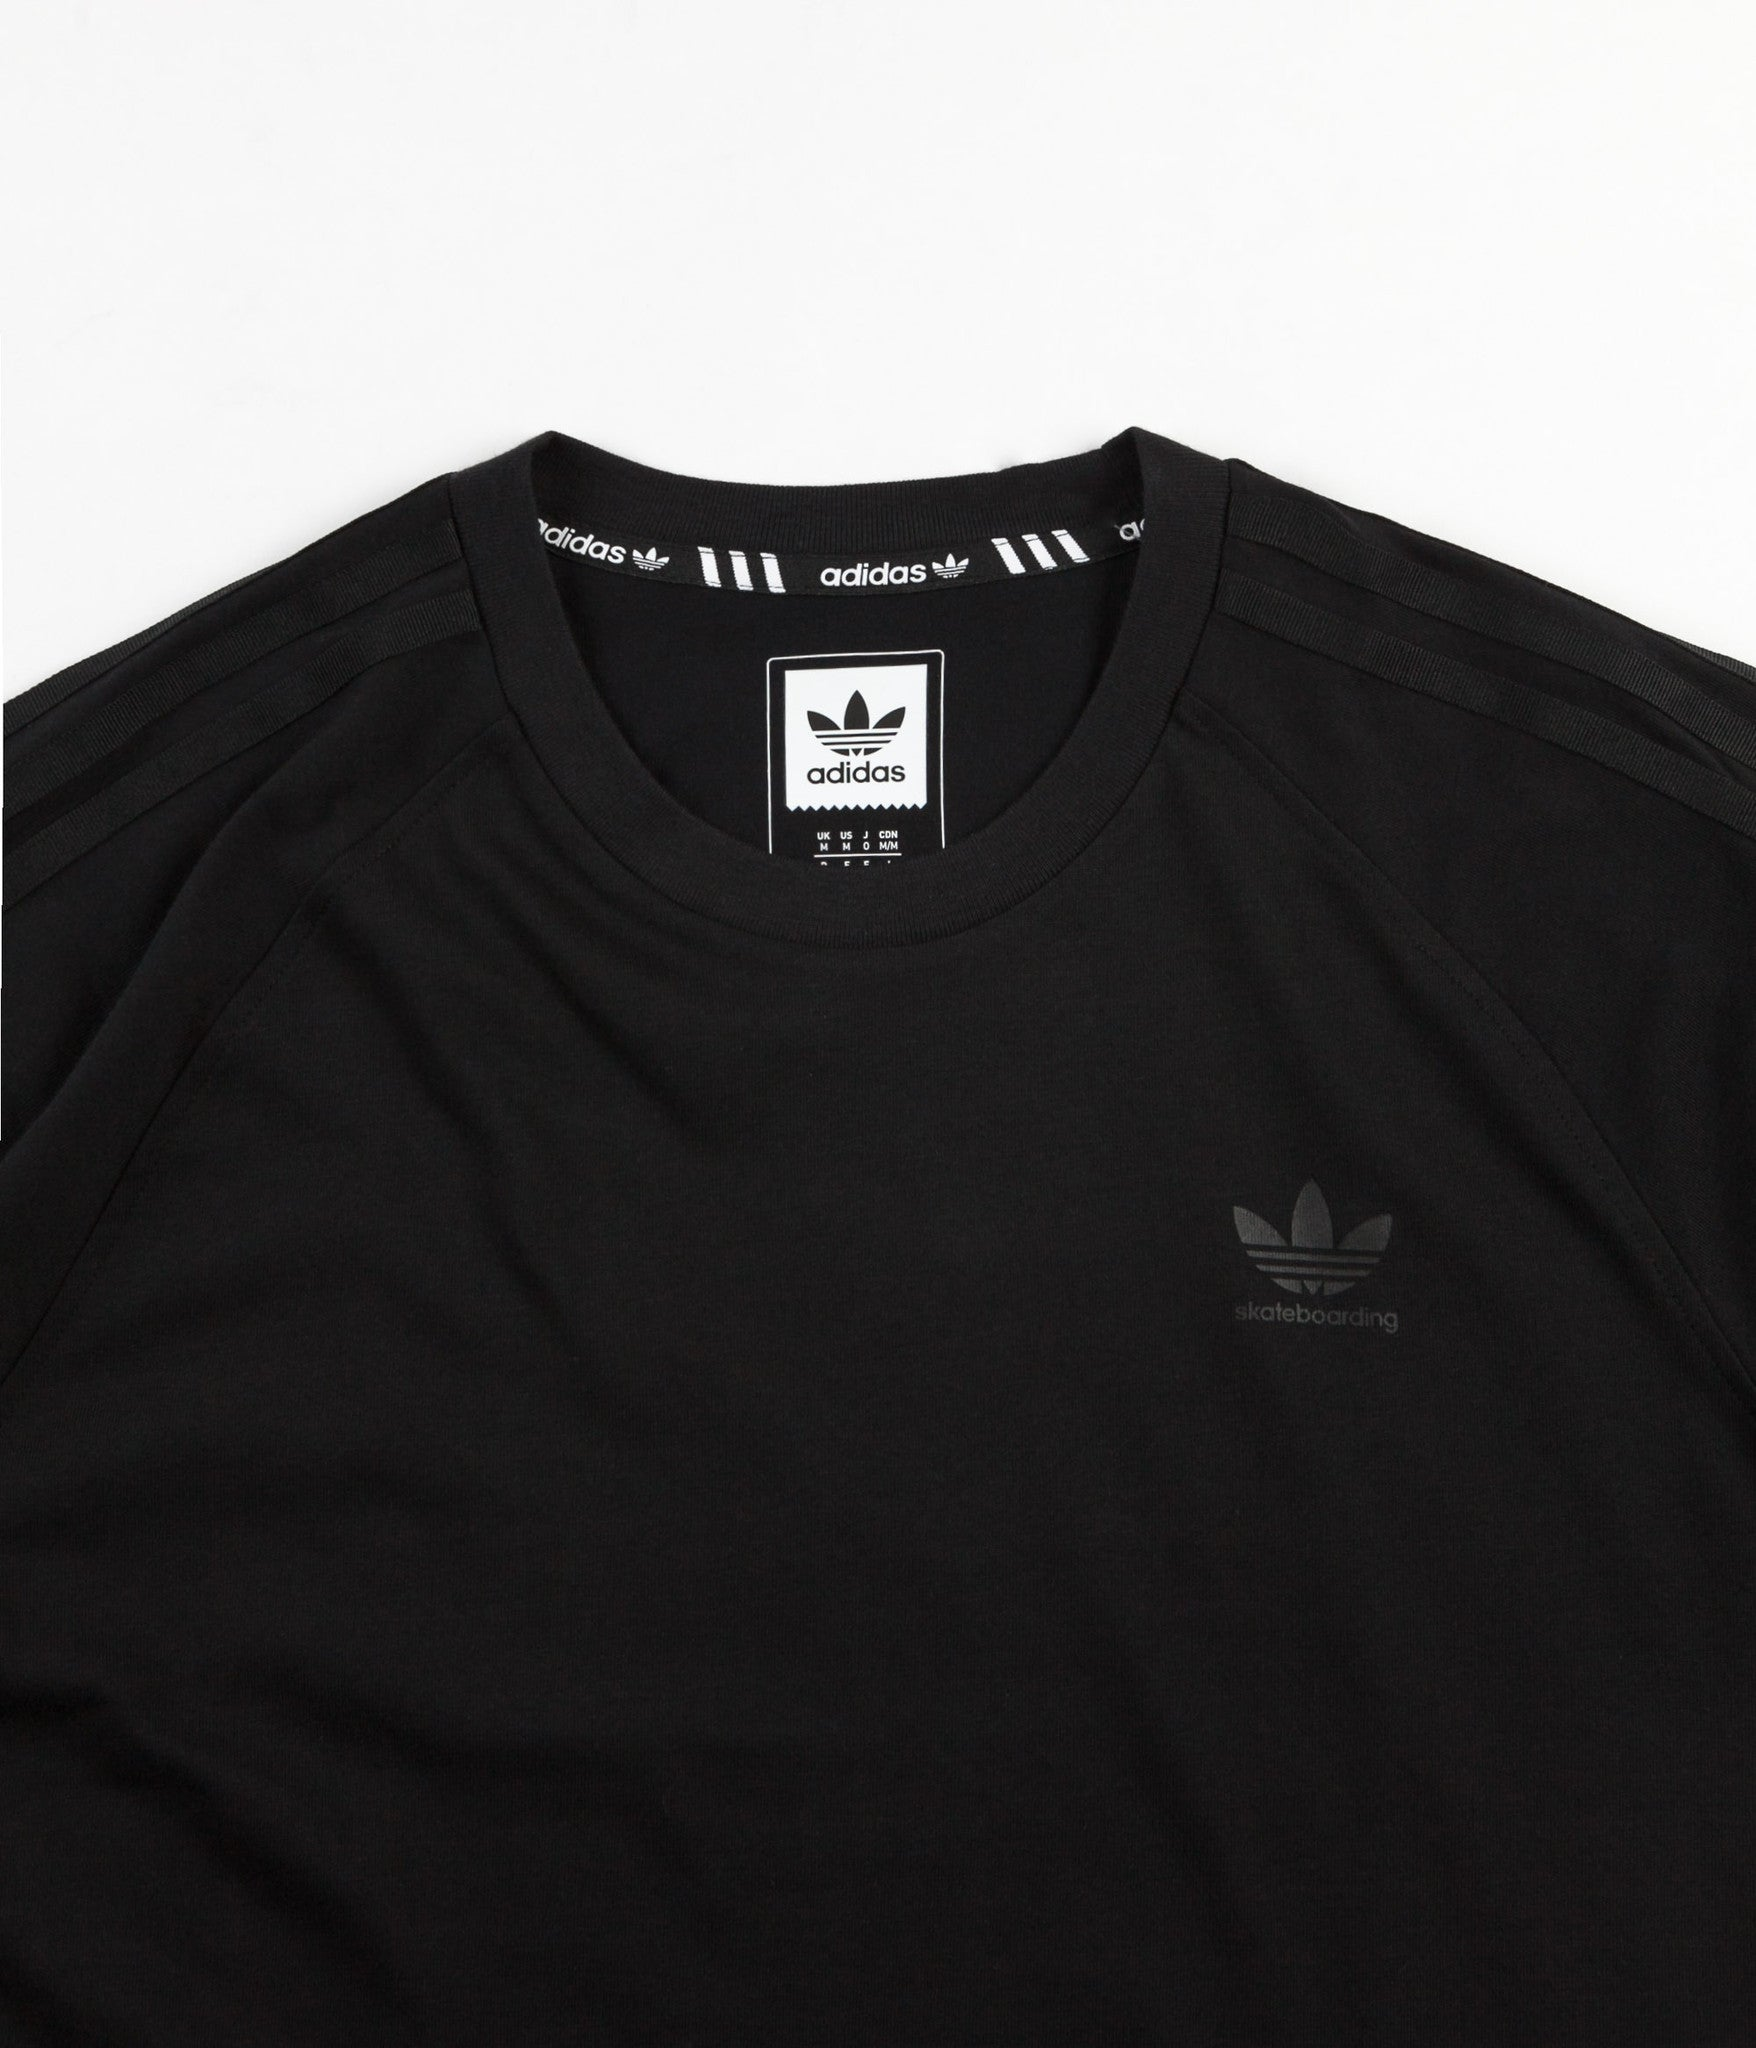 Adidas California 2.0 T-Shirt - Black